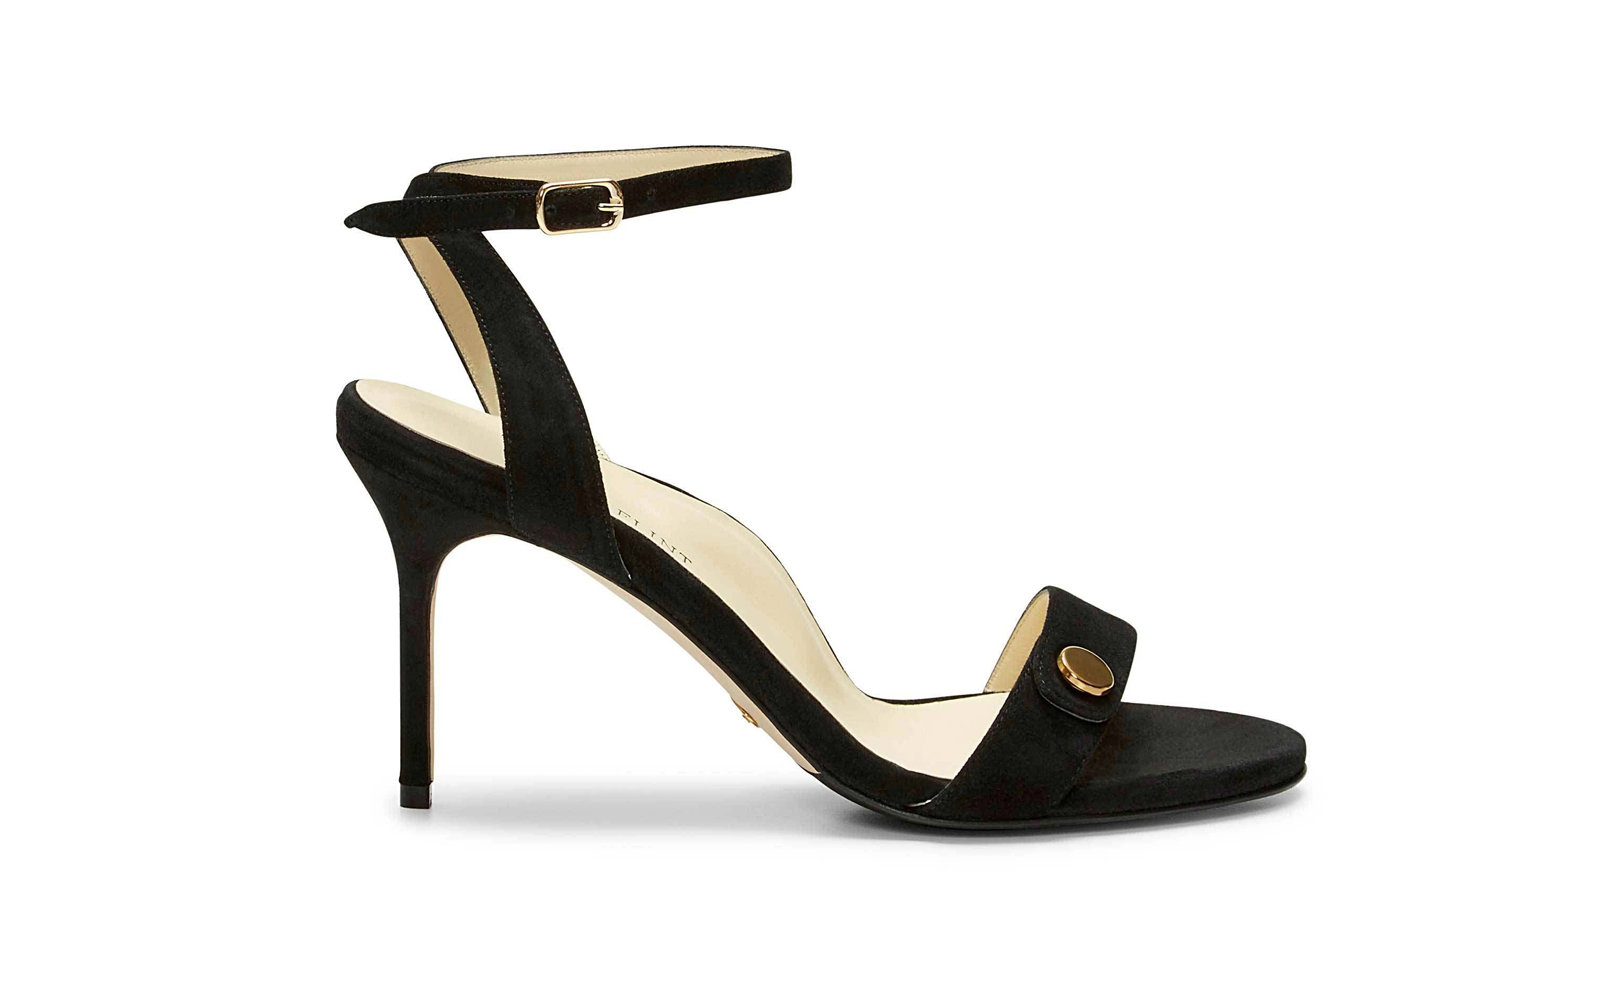 Jet Set Sandal 85 From the Sarah Flint x Cindy Crawford Collection in Black Suede